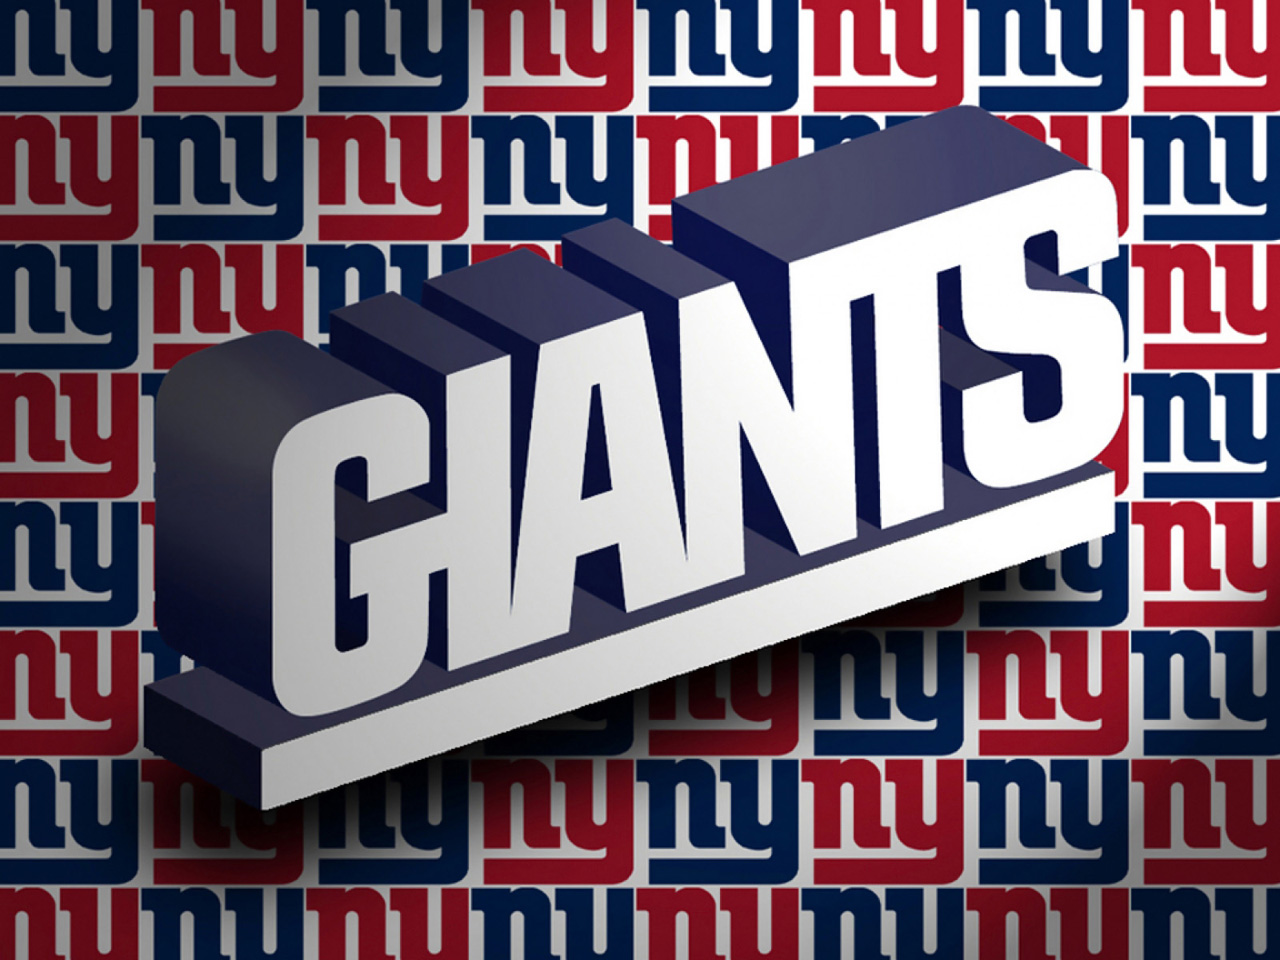 Free Download New York Giants Background Image New York Giants